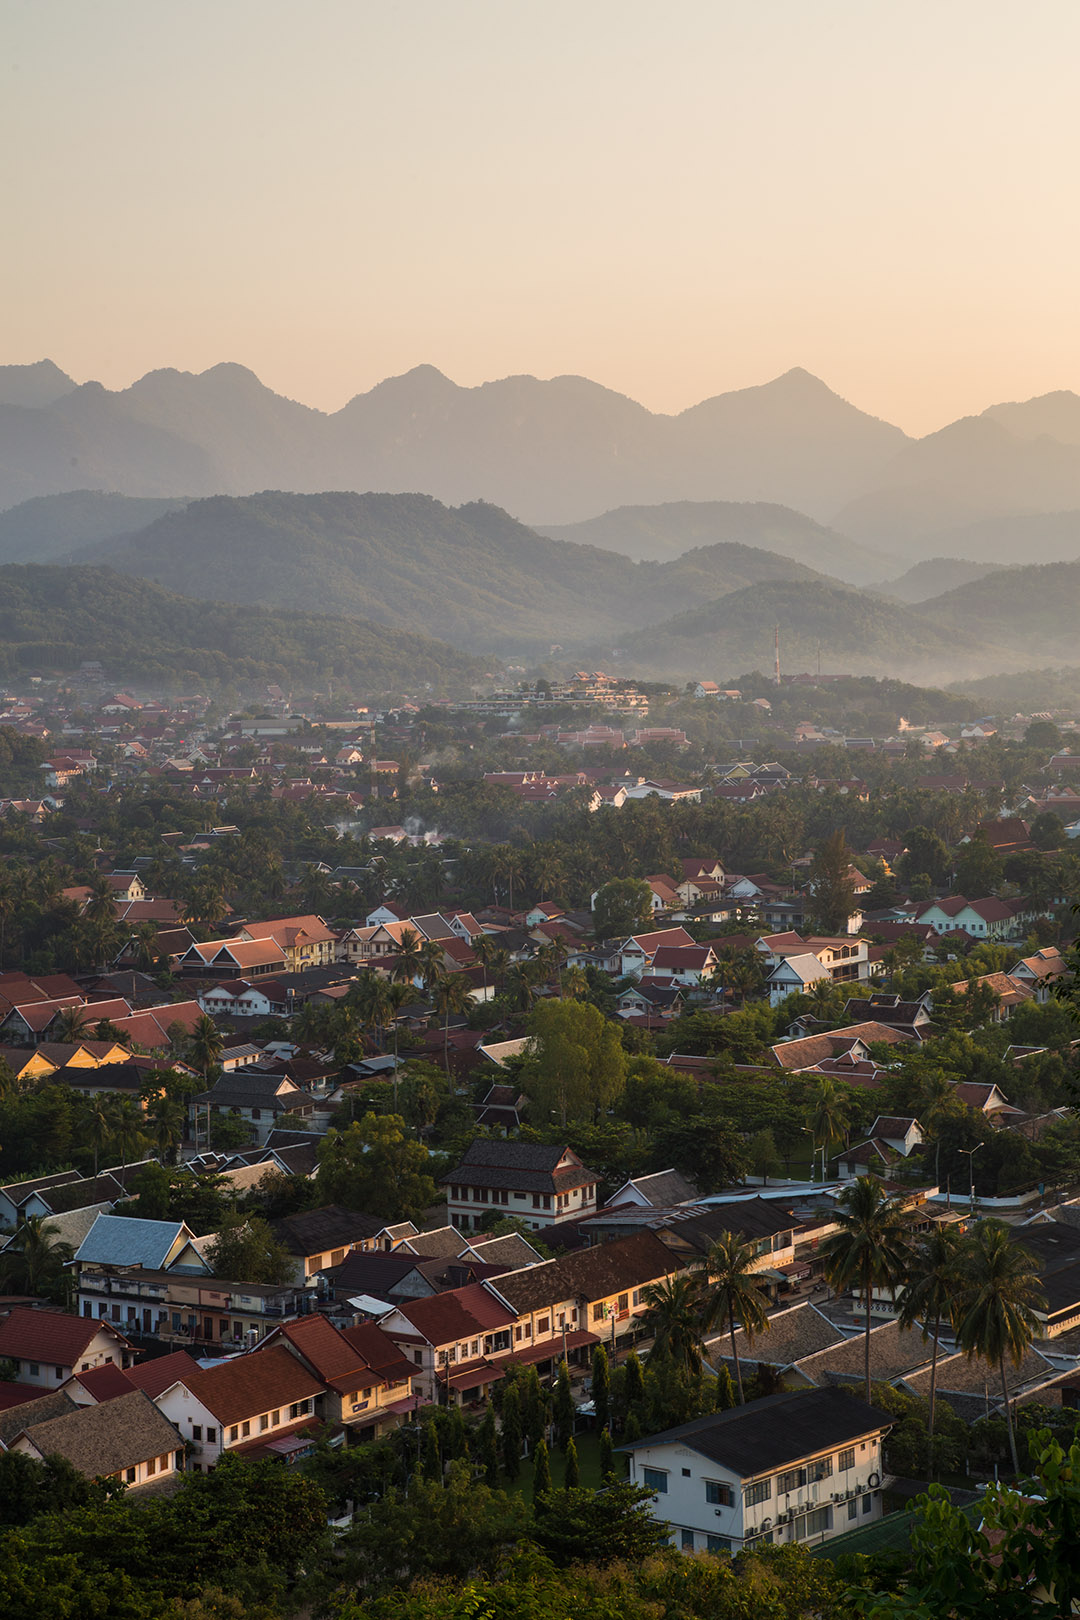 Golden hour in Laos